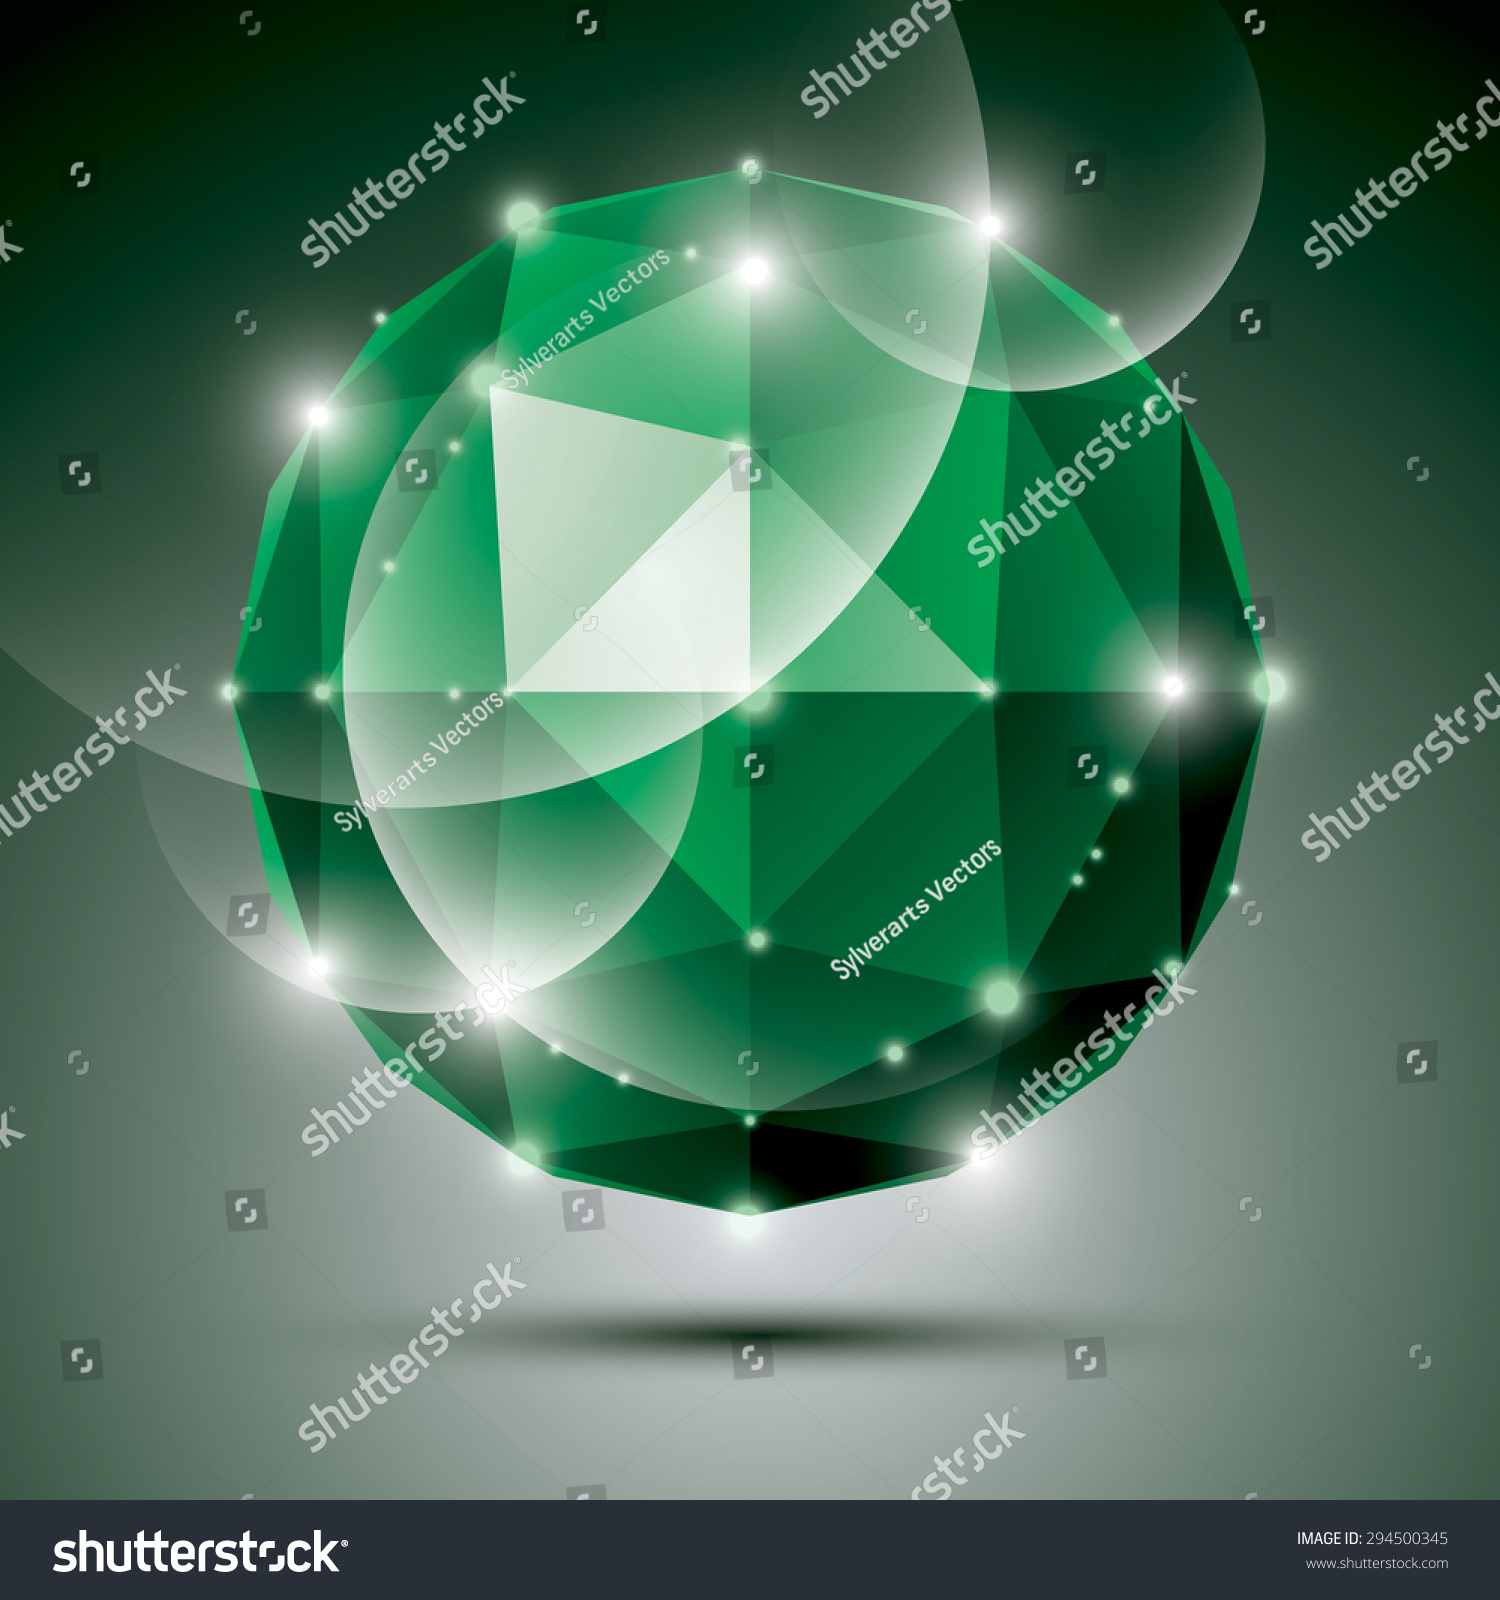 thumbnail slow video stock precious emeralds footage stones motion hemhffndgjdpoqixi videoblocks emerald stone